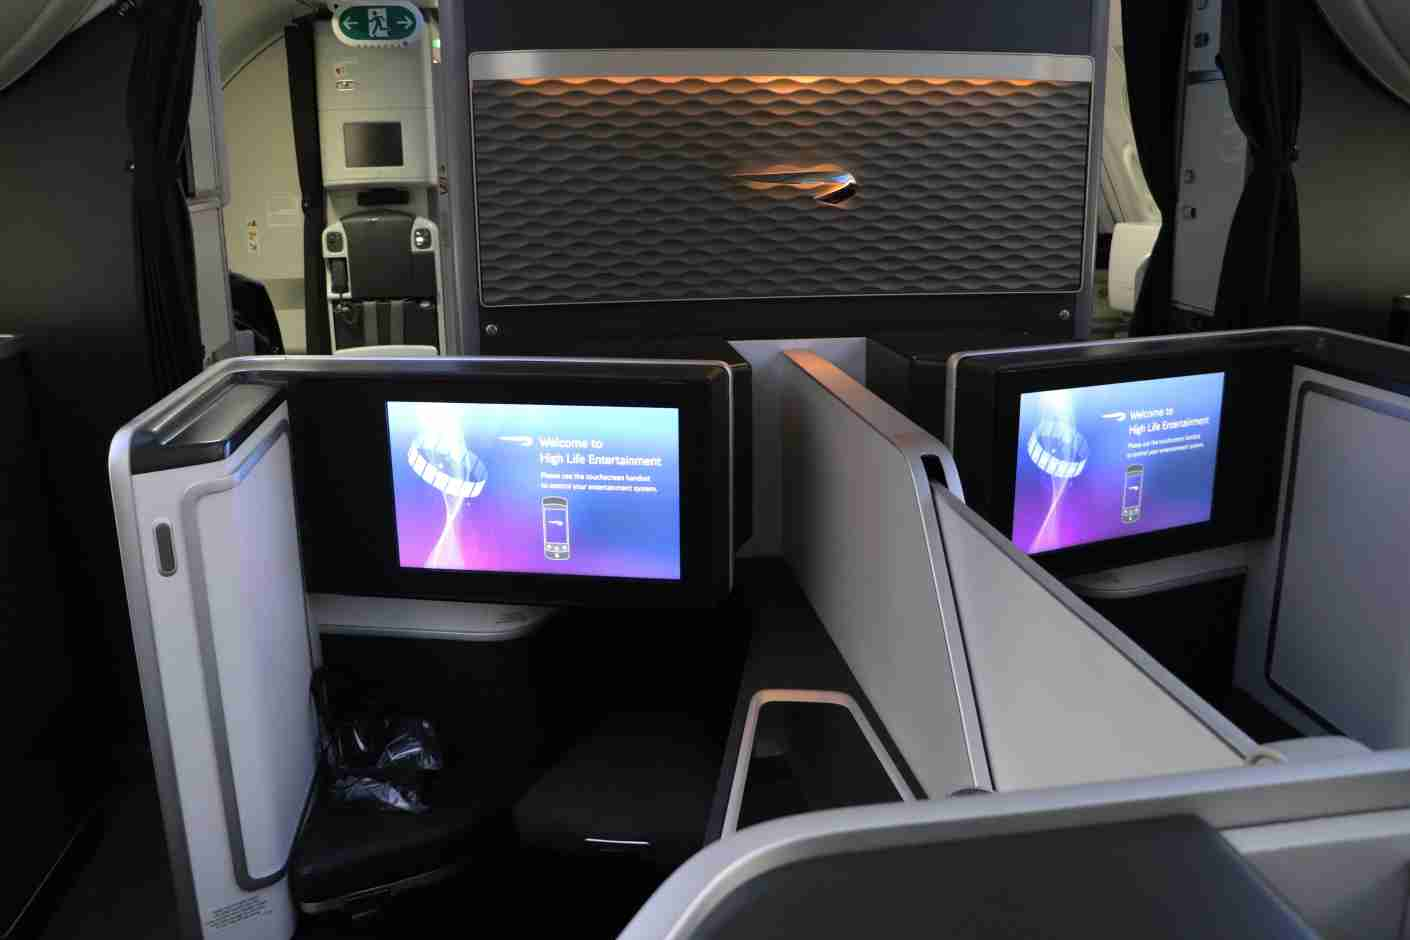 British Airways 787-9 First seats 1E and 1F.